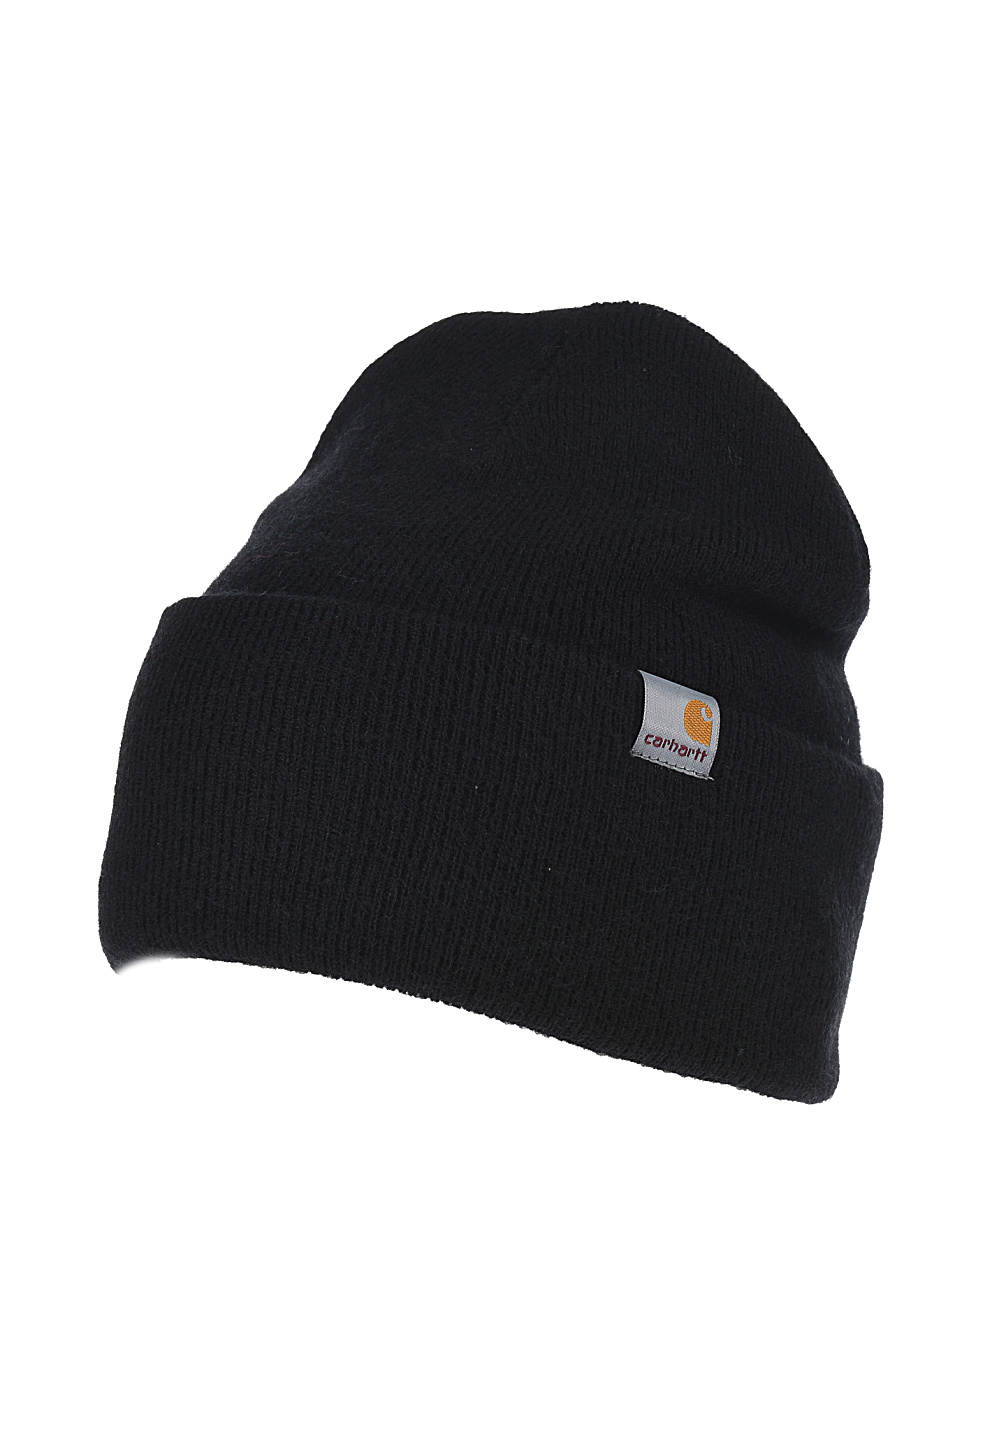 carhartt wip playoff bonnet noir planet sports. Black Bedroom Furniture Sets. Home Design Ideas